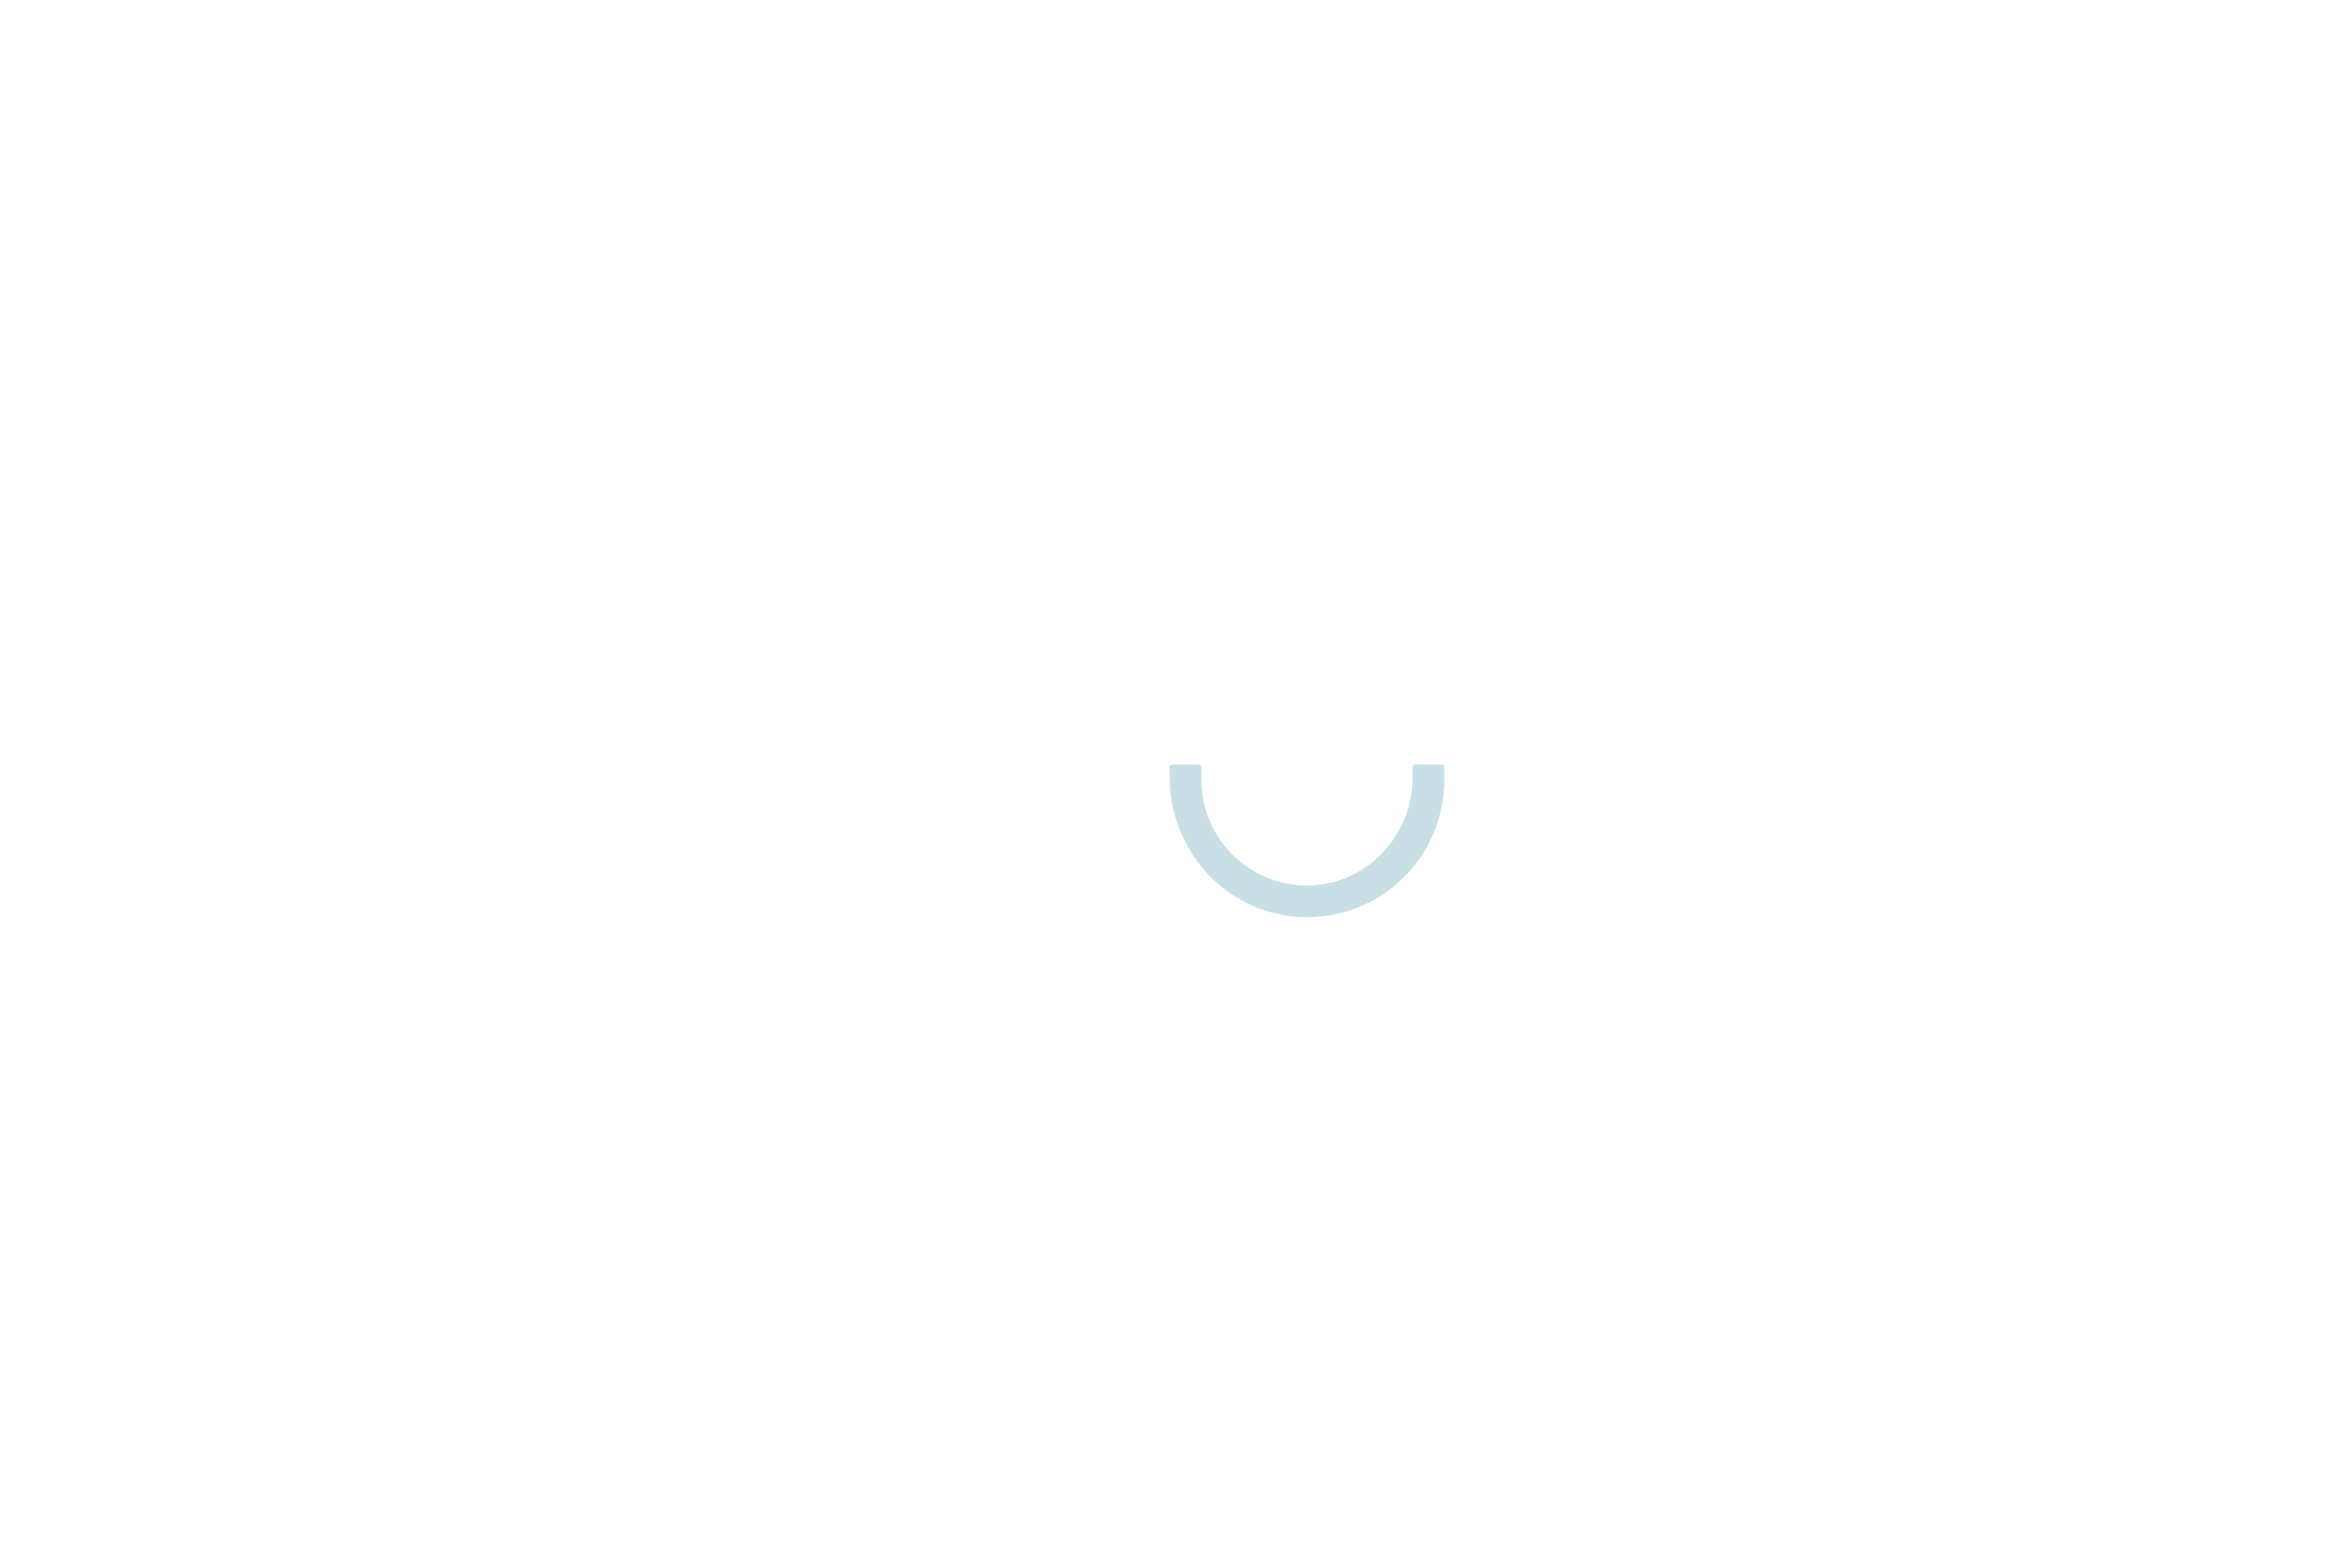 Clinique dentaire Maguire